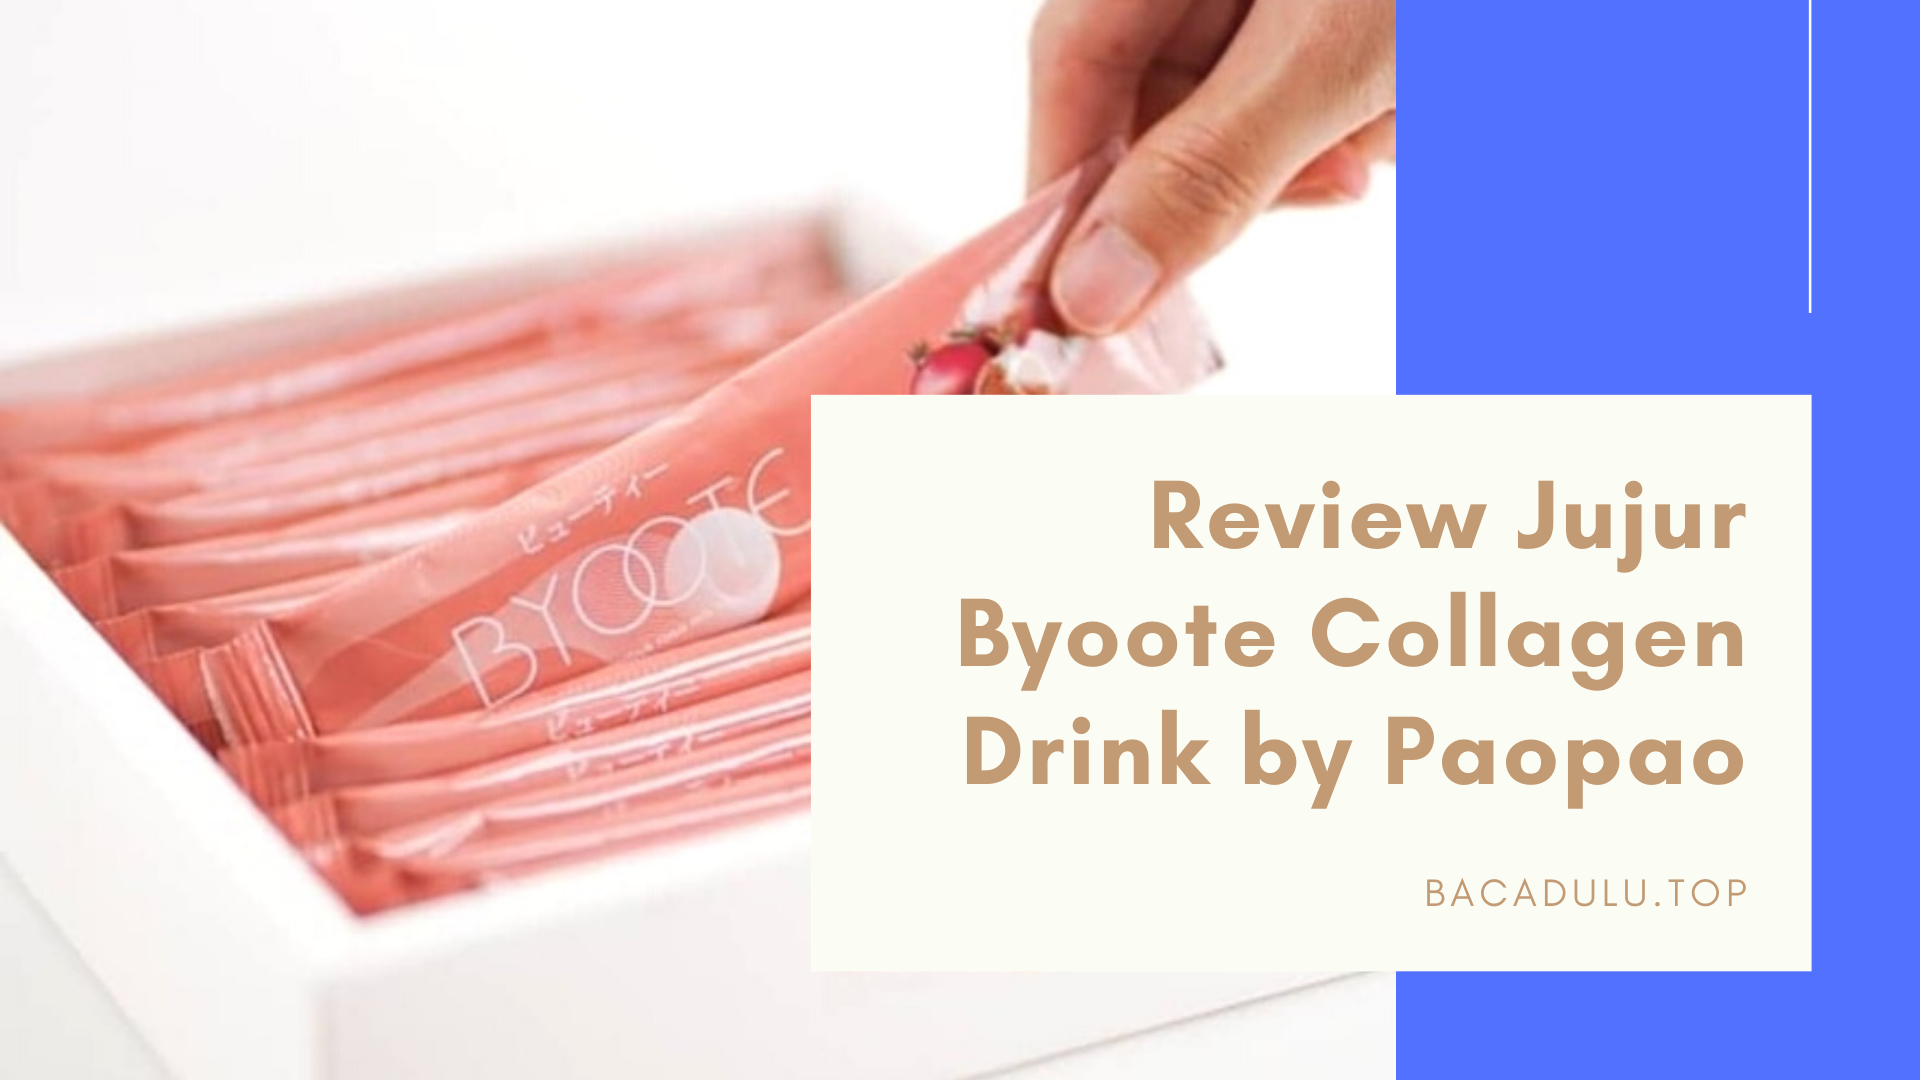 Review Jujur Byoote Collagen Drink by Paopao